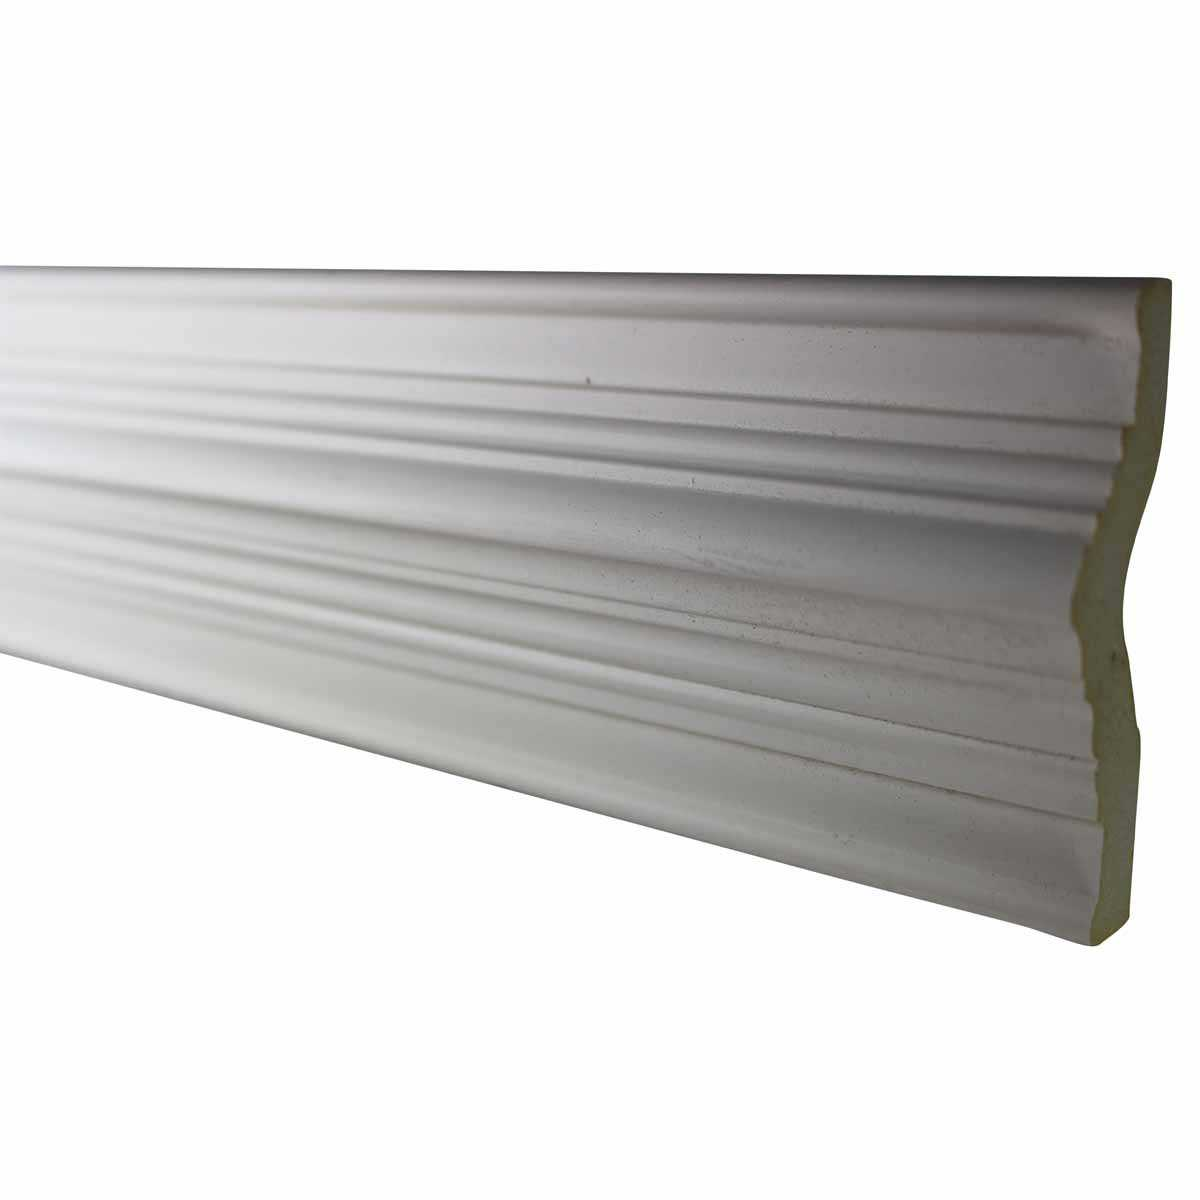 Cornice White Urethane 23.5' Sample of 11537 | Renovator's Supply